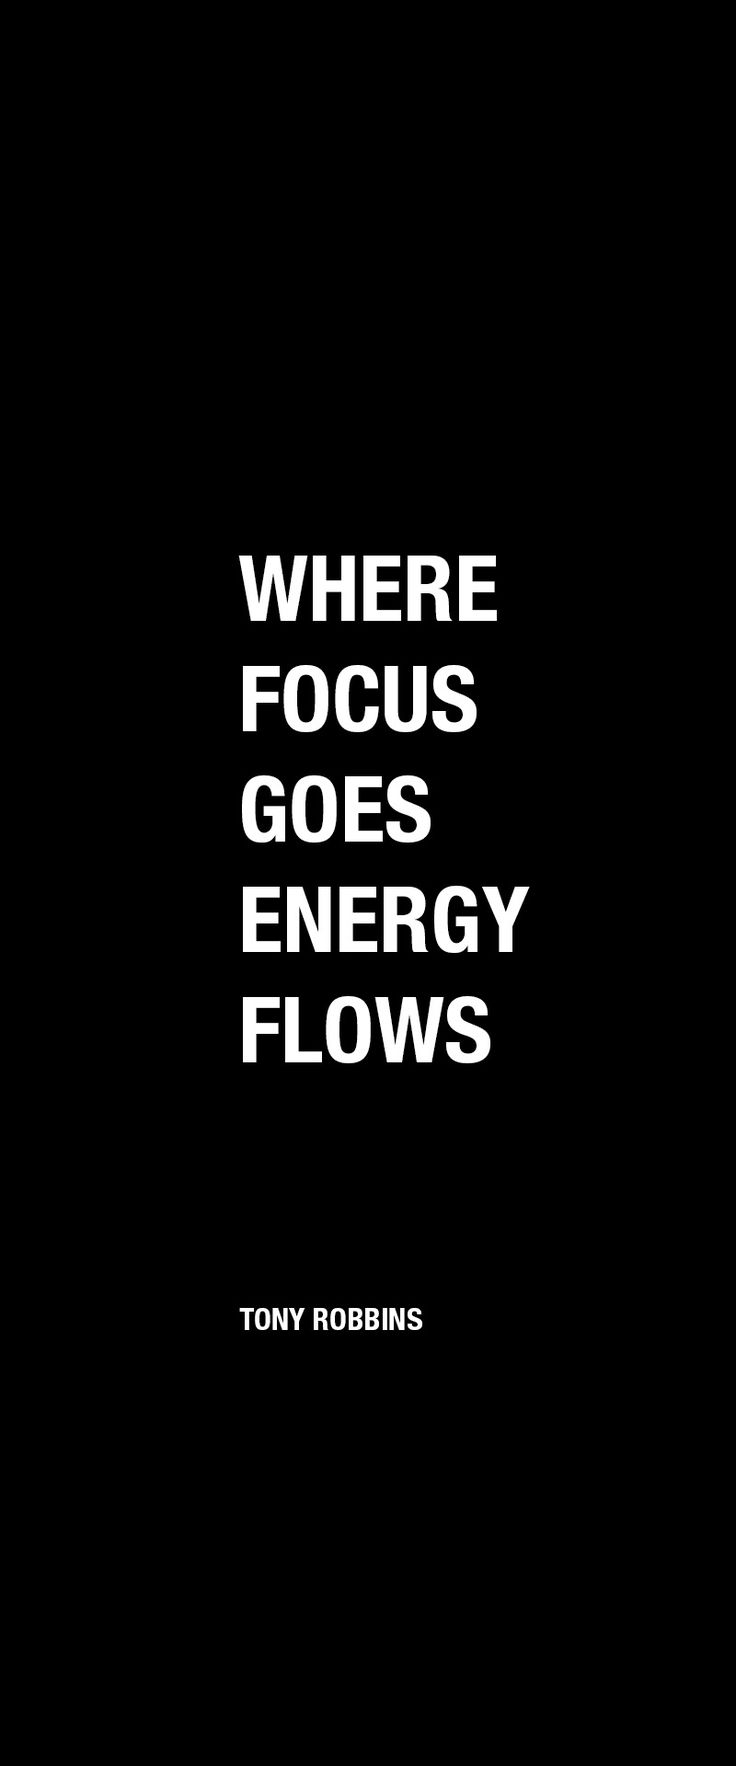 What are you focusing on right this minute? Be careful, sweetheart - where focus goes energy flows.